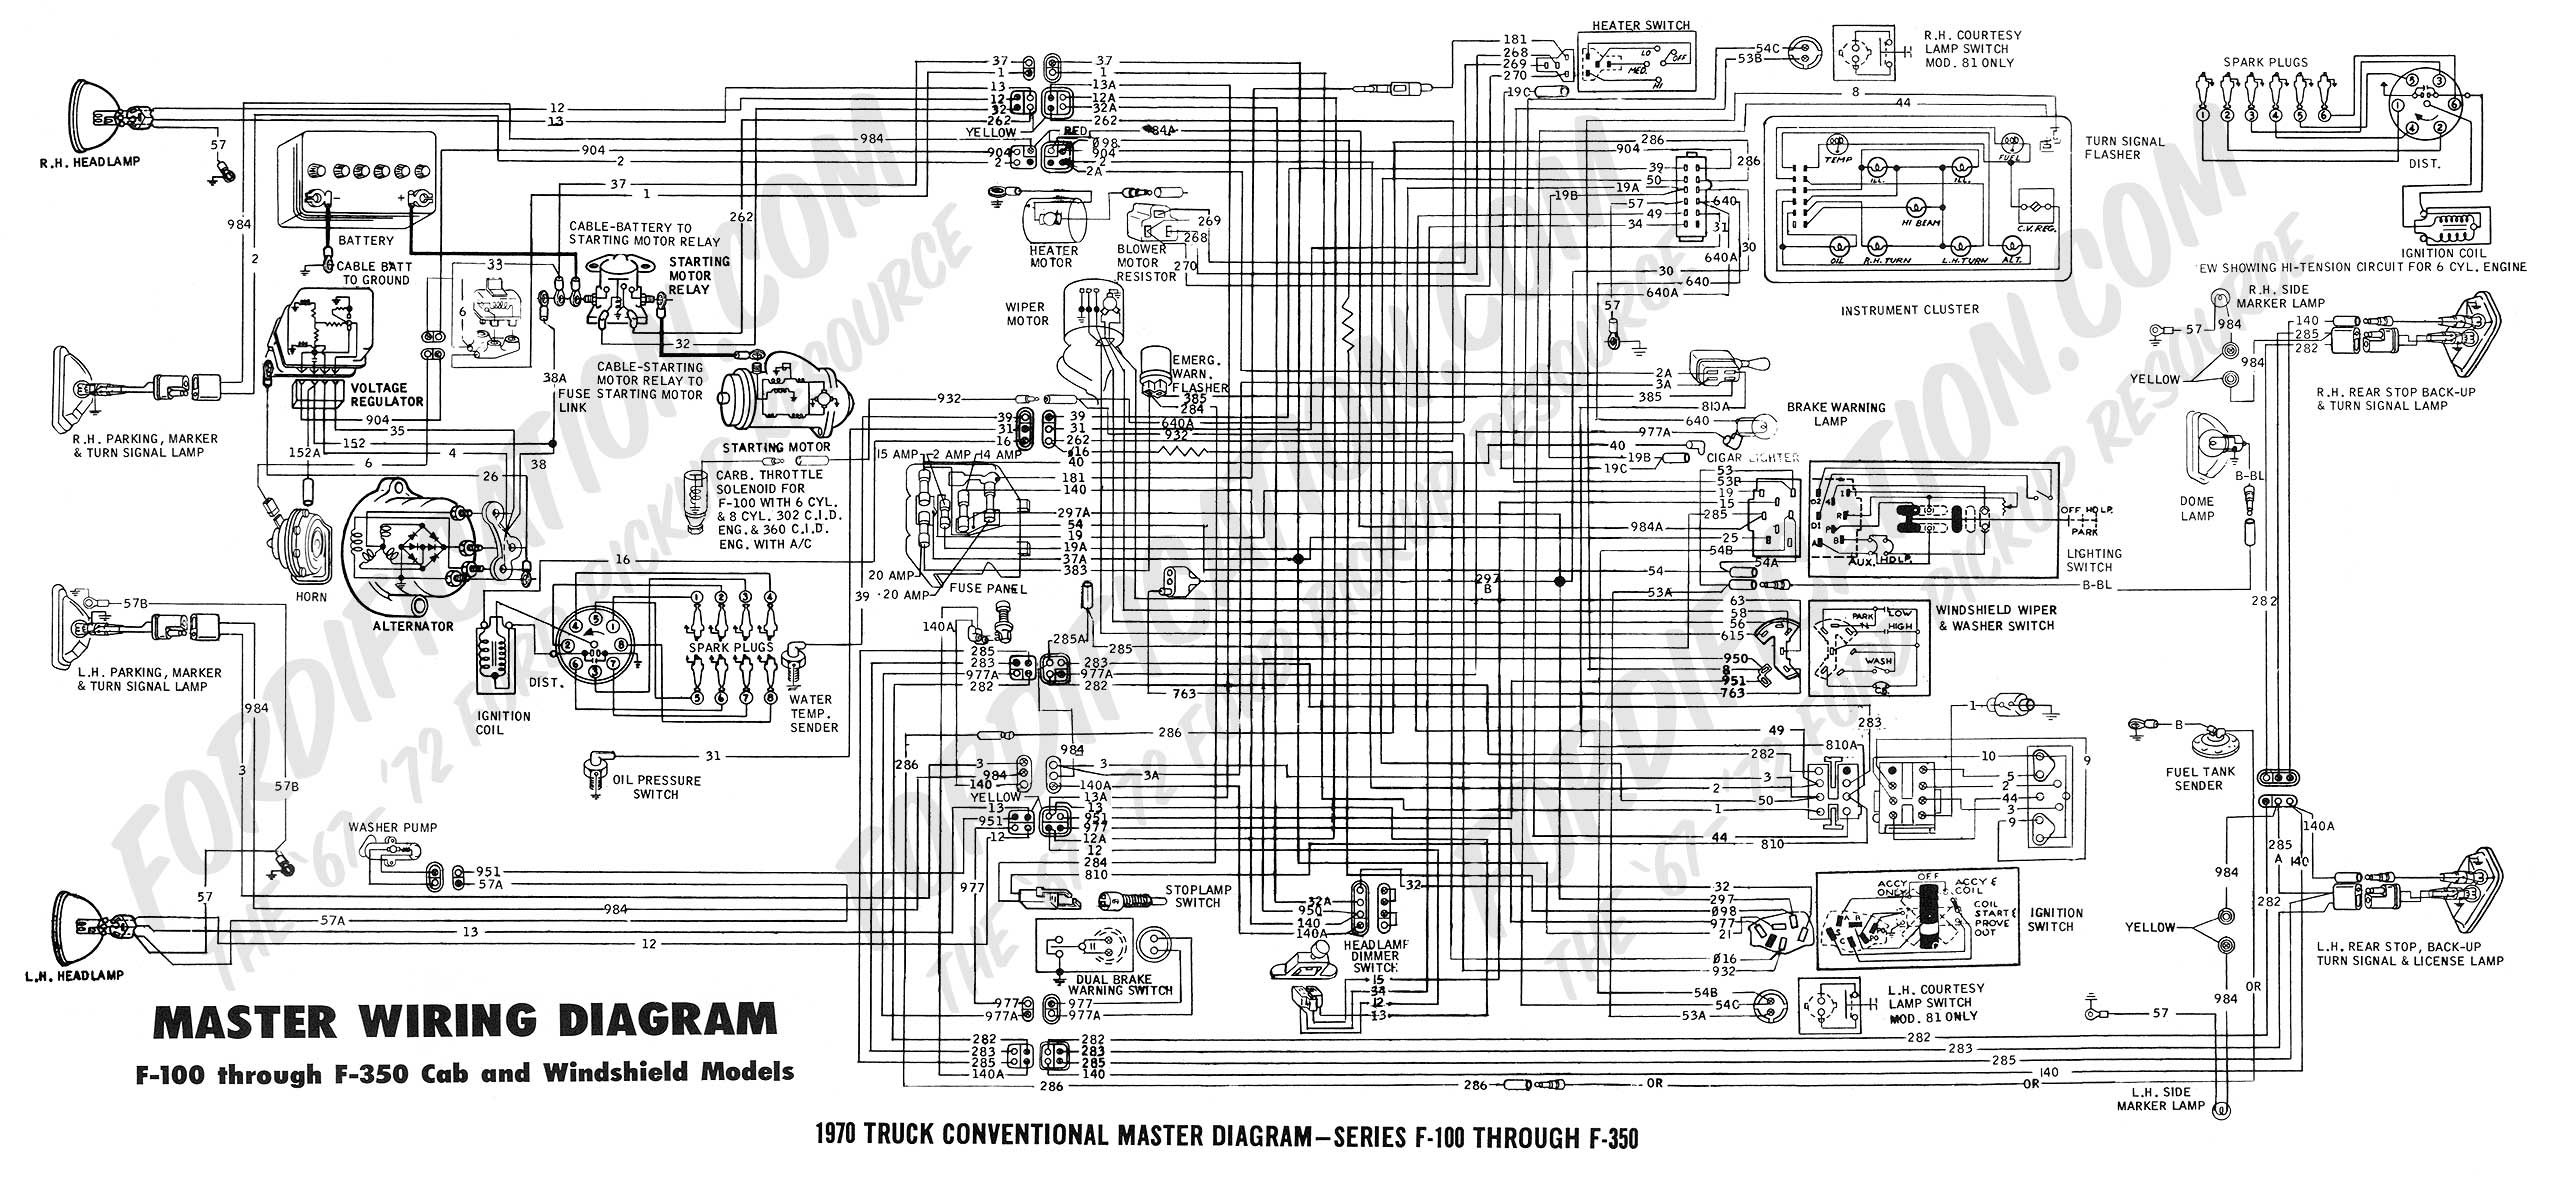 Incredible Wiring Diagram For 1972 Ford Mustang Diagram Data Schema Wiring Digital Resources Remcakbiperorg